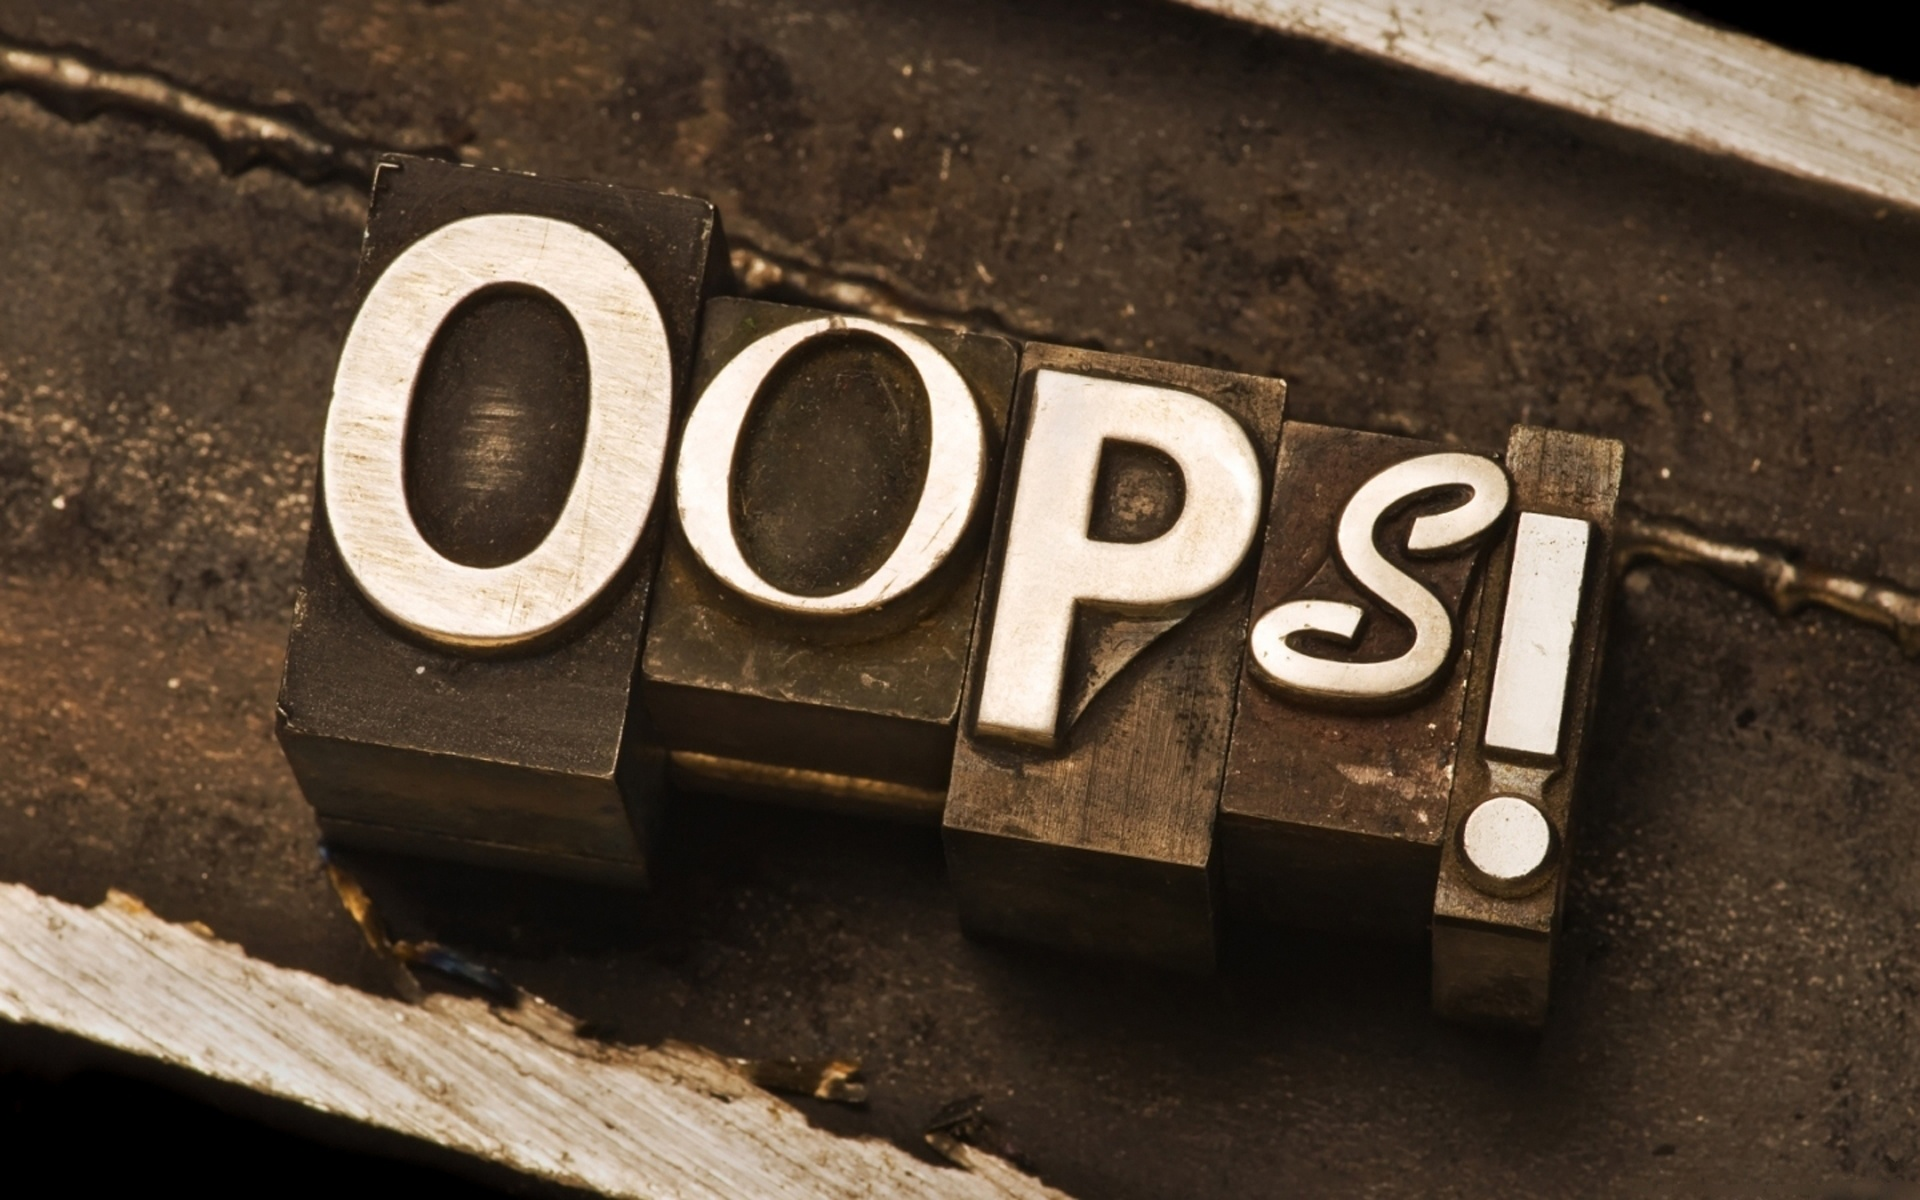 Matt Cutts - Top 5 SEO Mistakes